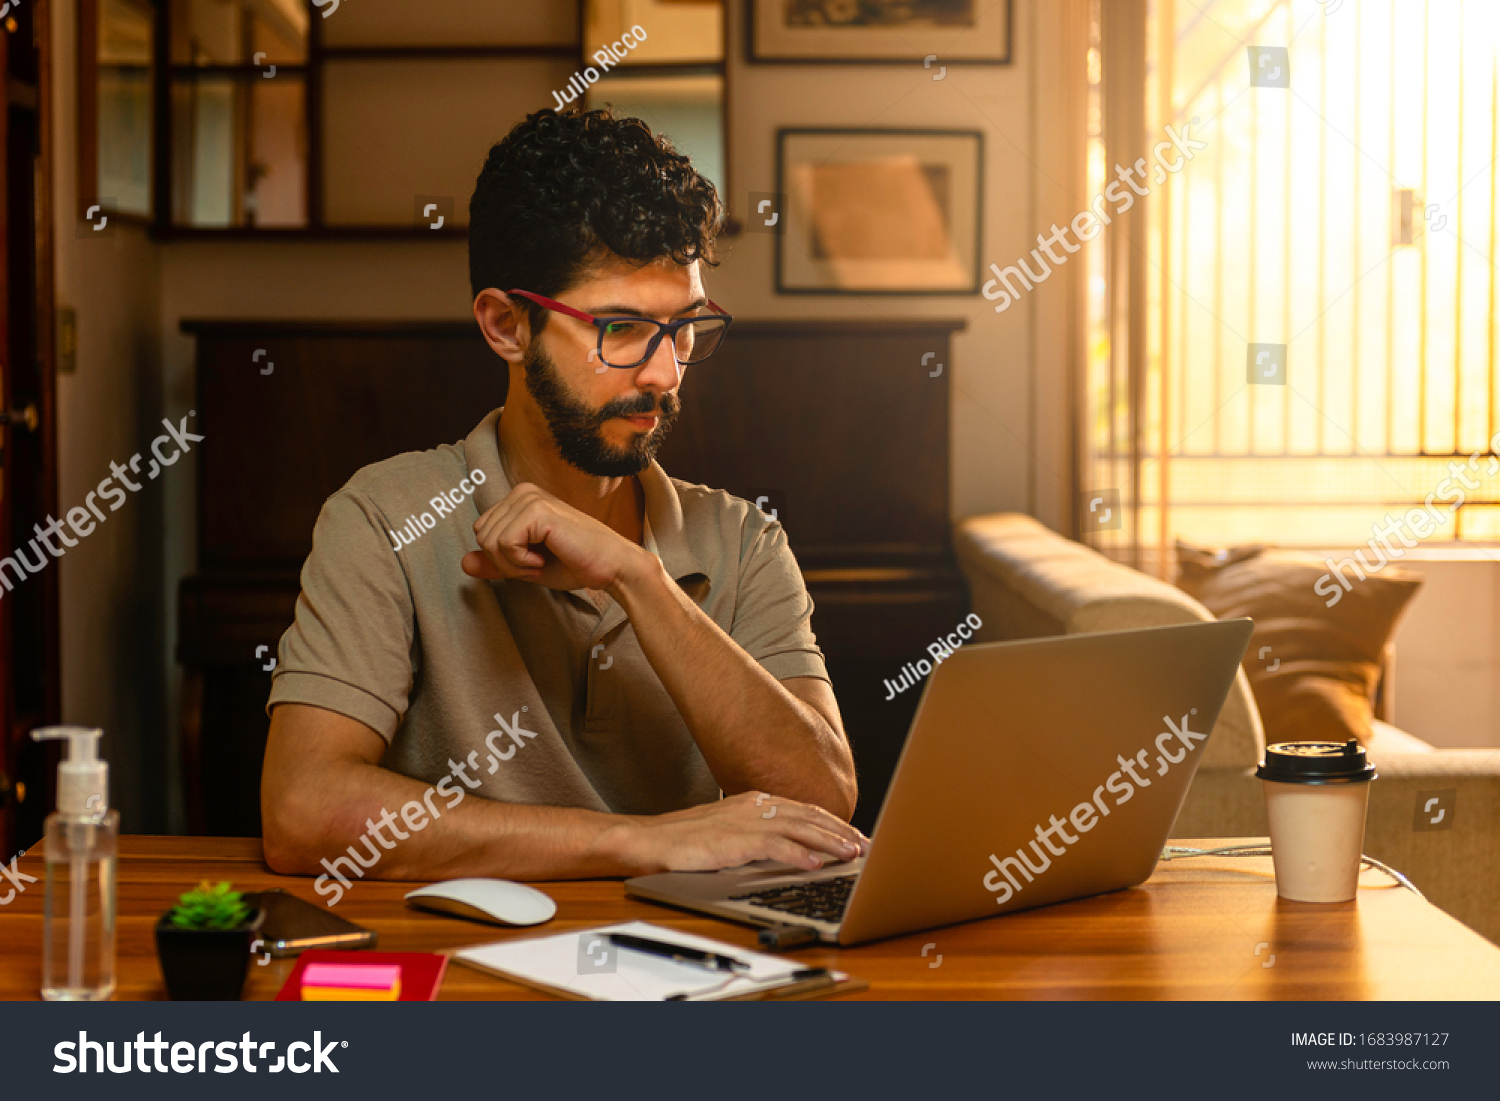 Handsome model with beard at his workplace. Home office concept. #1683987127